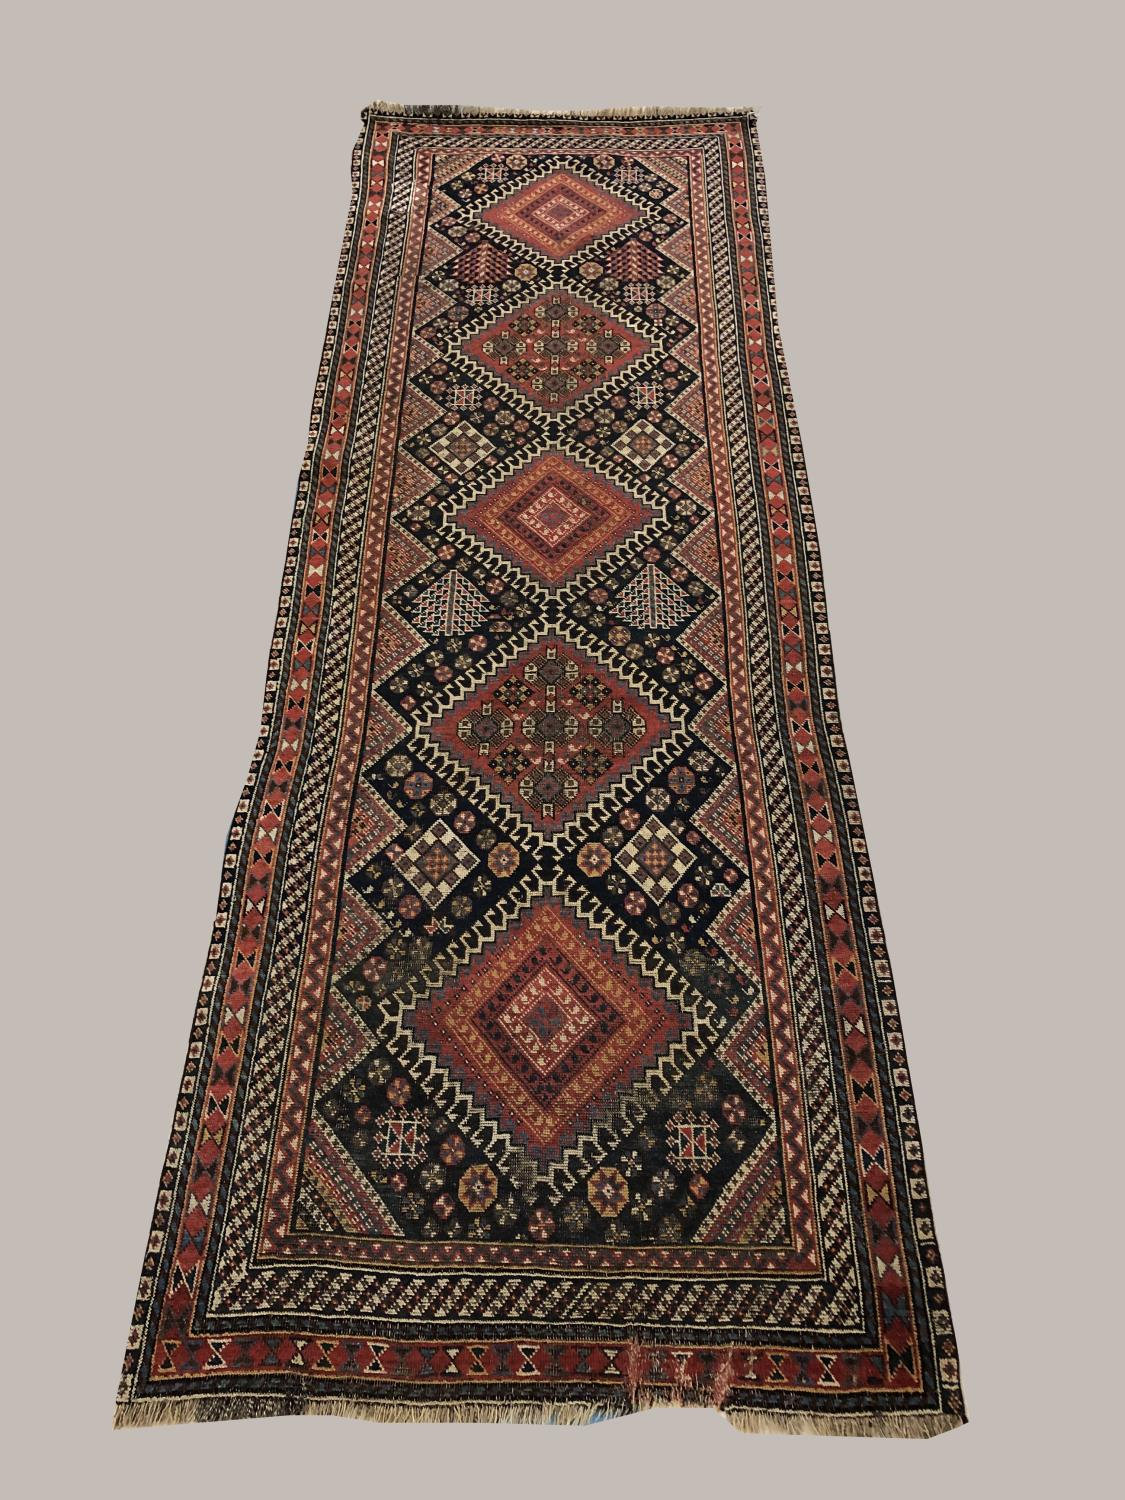 A KASHGAI RUNNER, South West Iran, c.1900, the midnight blue field with single column of latch